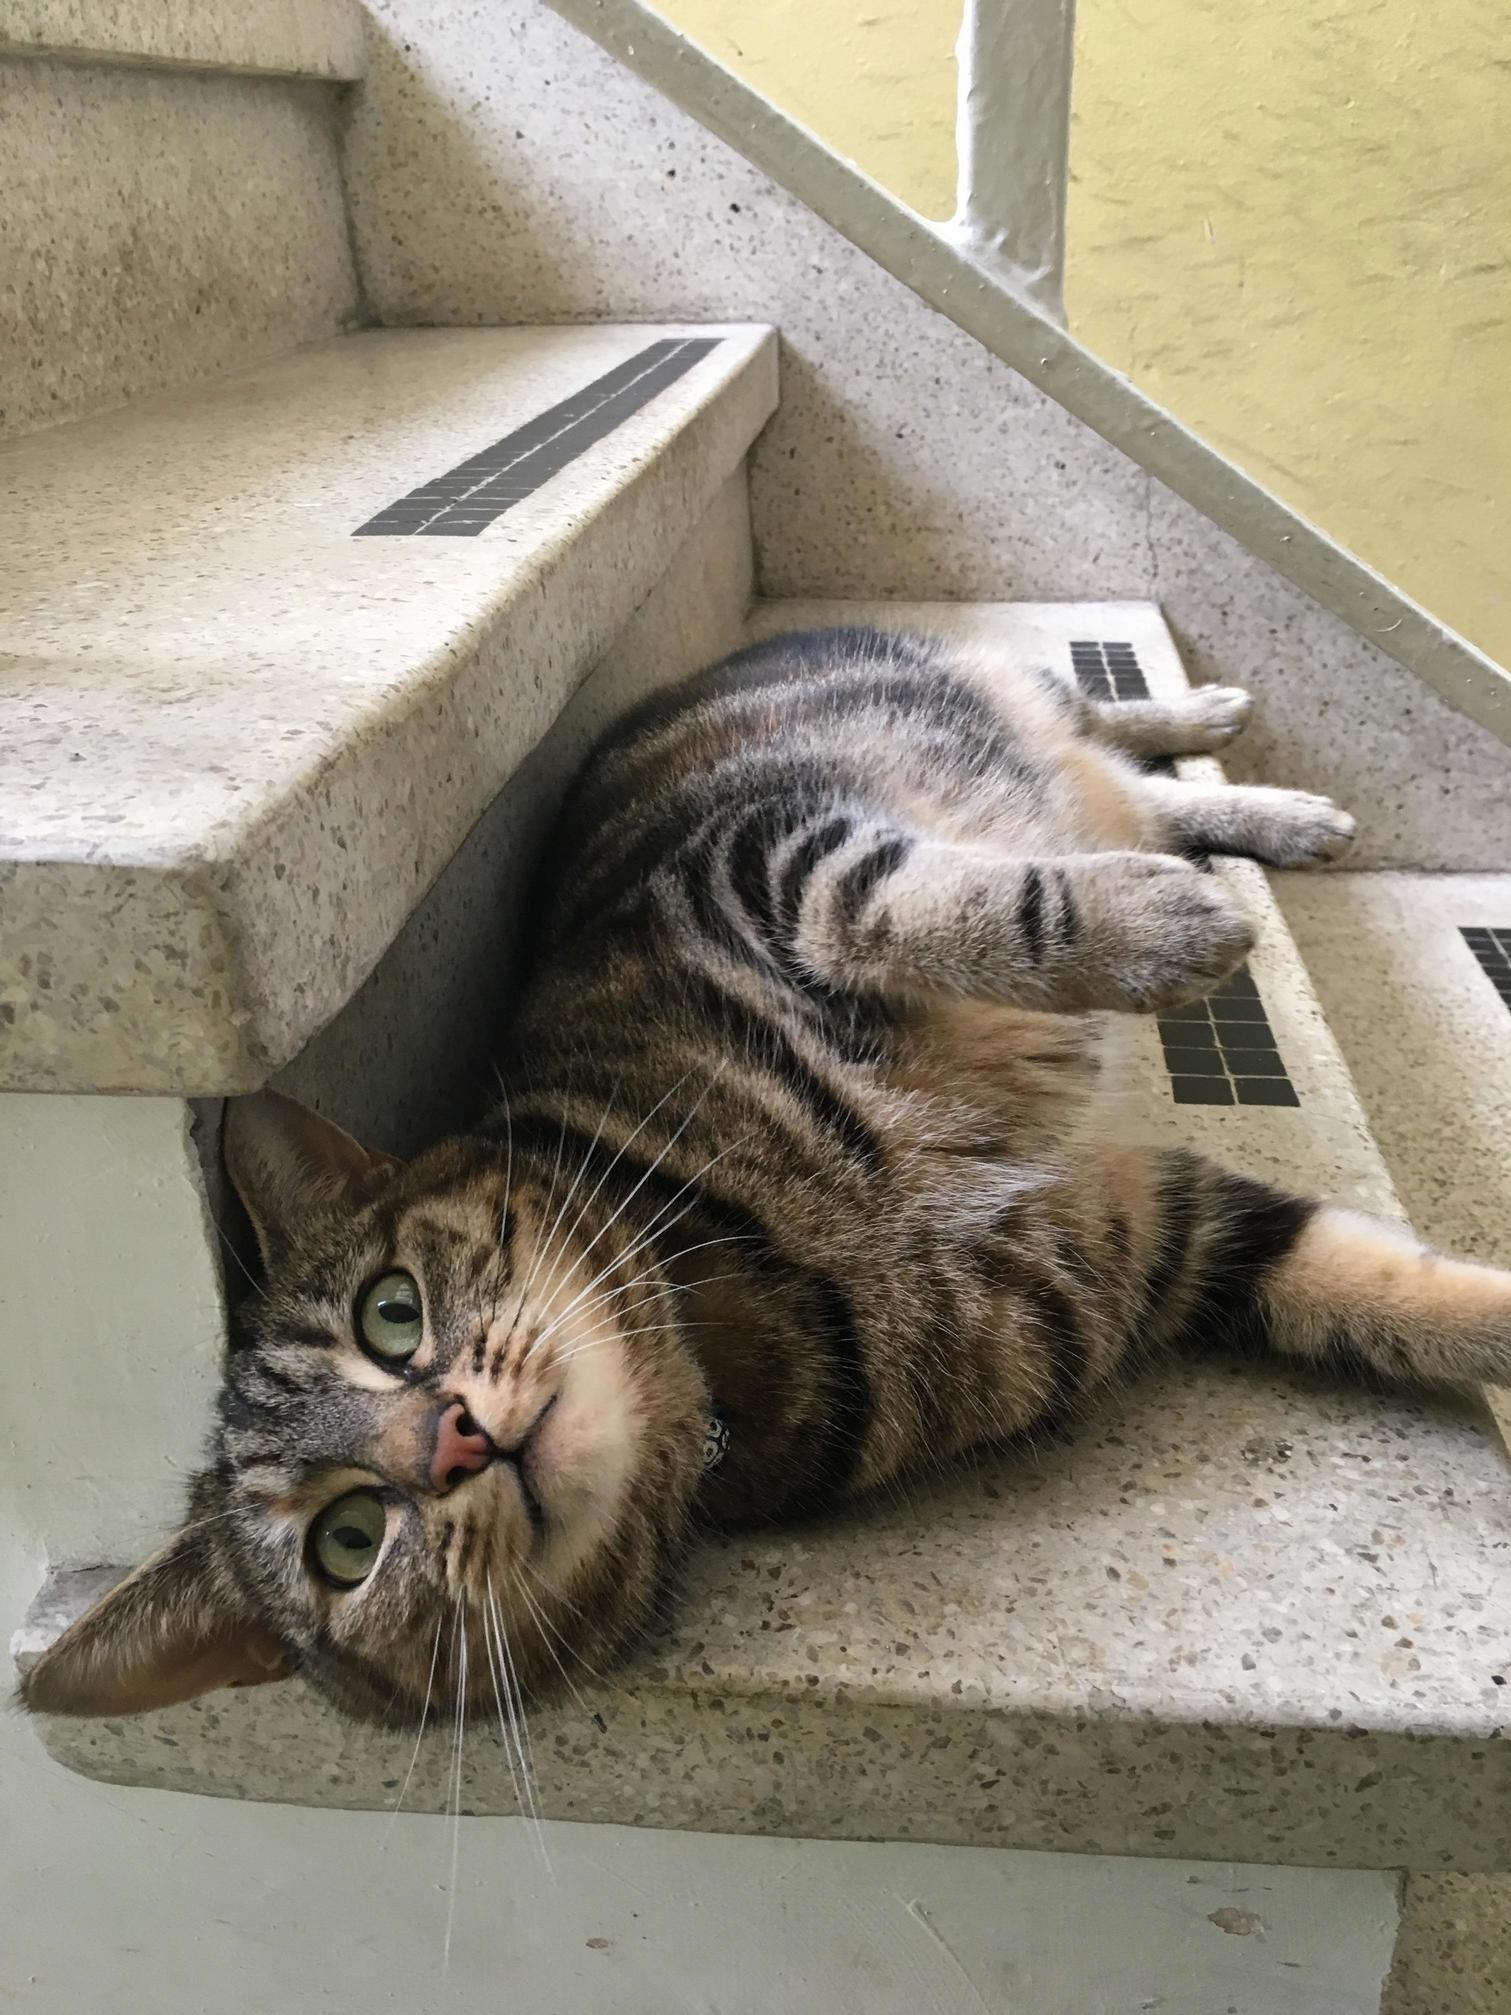 Nutty neighbourhood cat can barely hold still for a picture just wants dem scritches too much